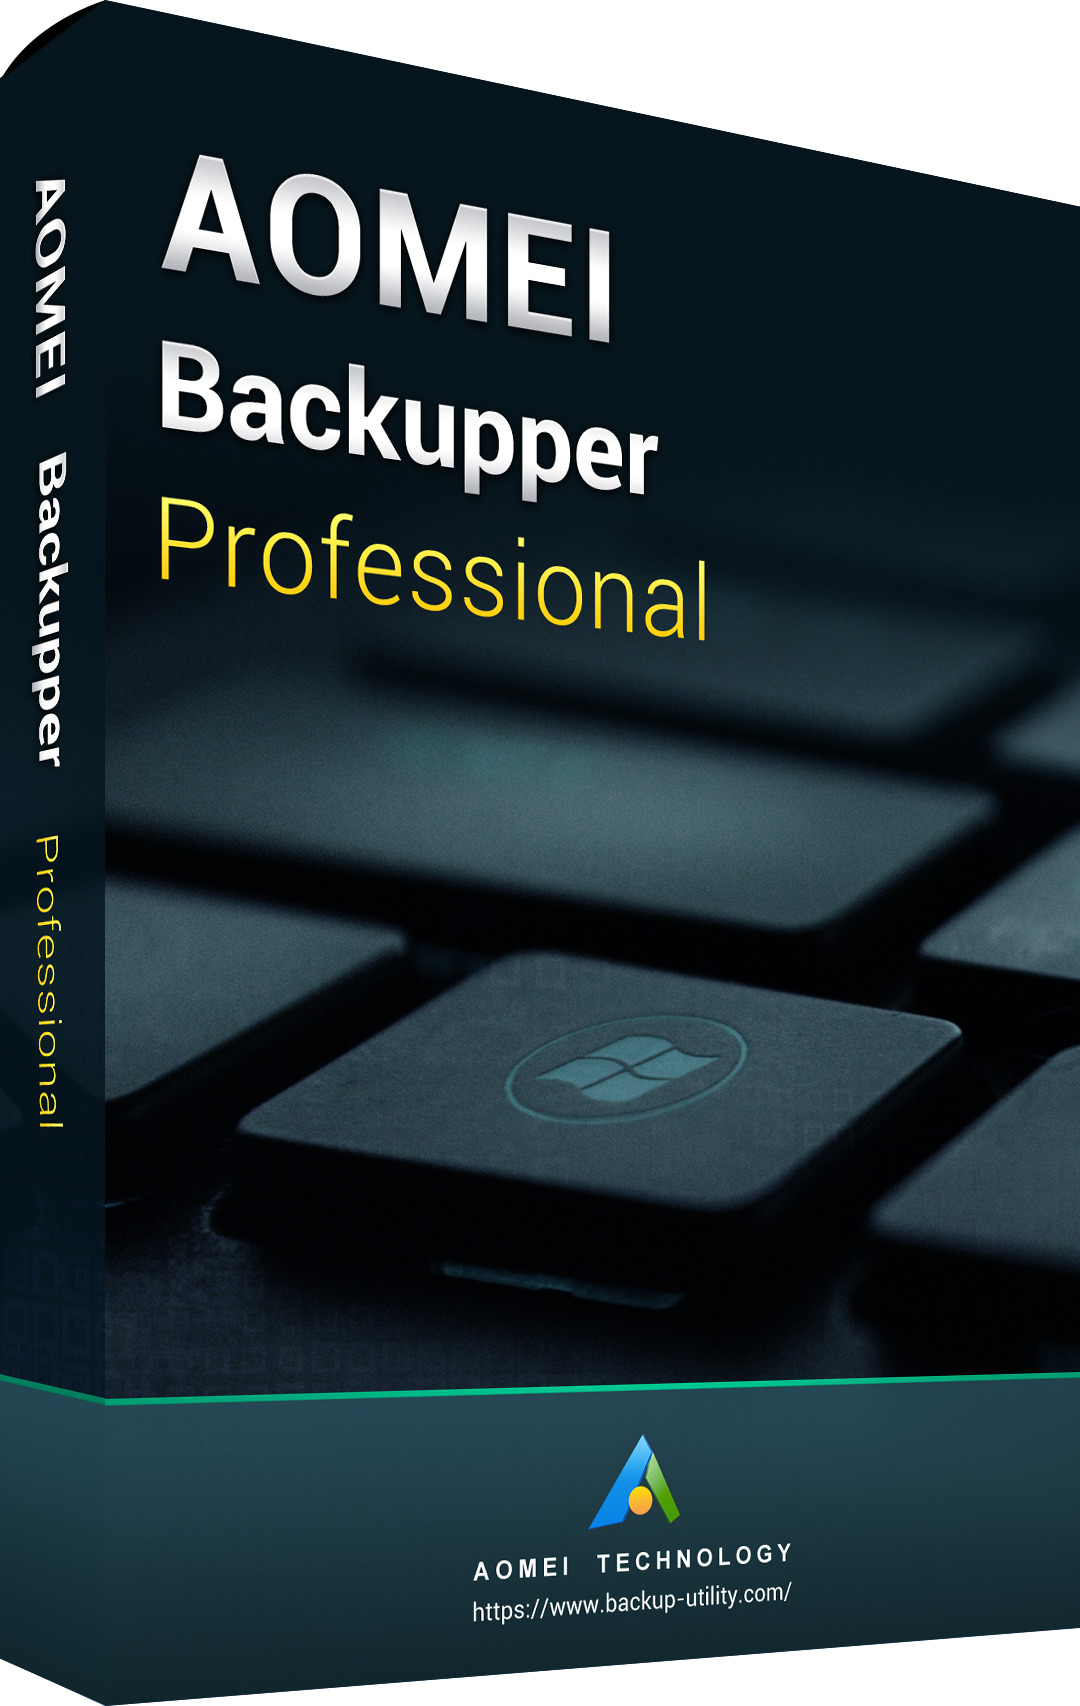 Official AOMEI Backupper Professional 365 Days 5.7 Edition Key Global